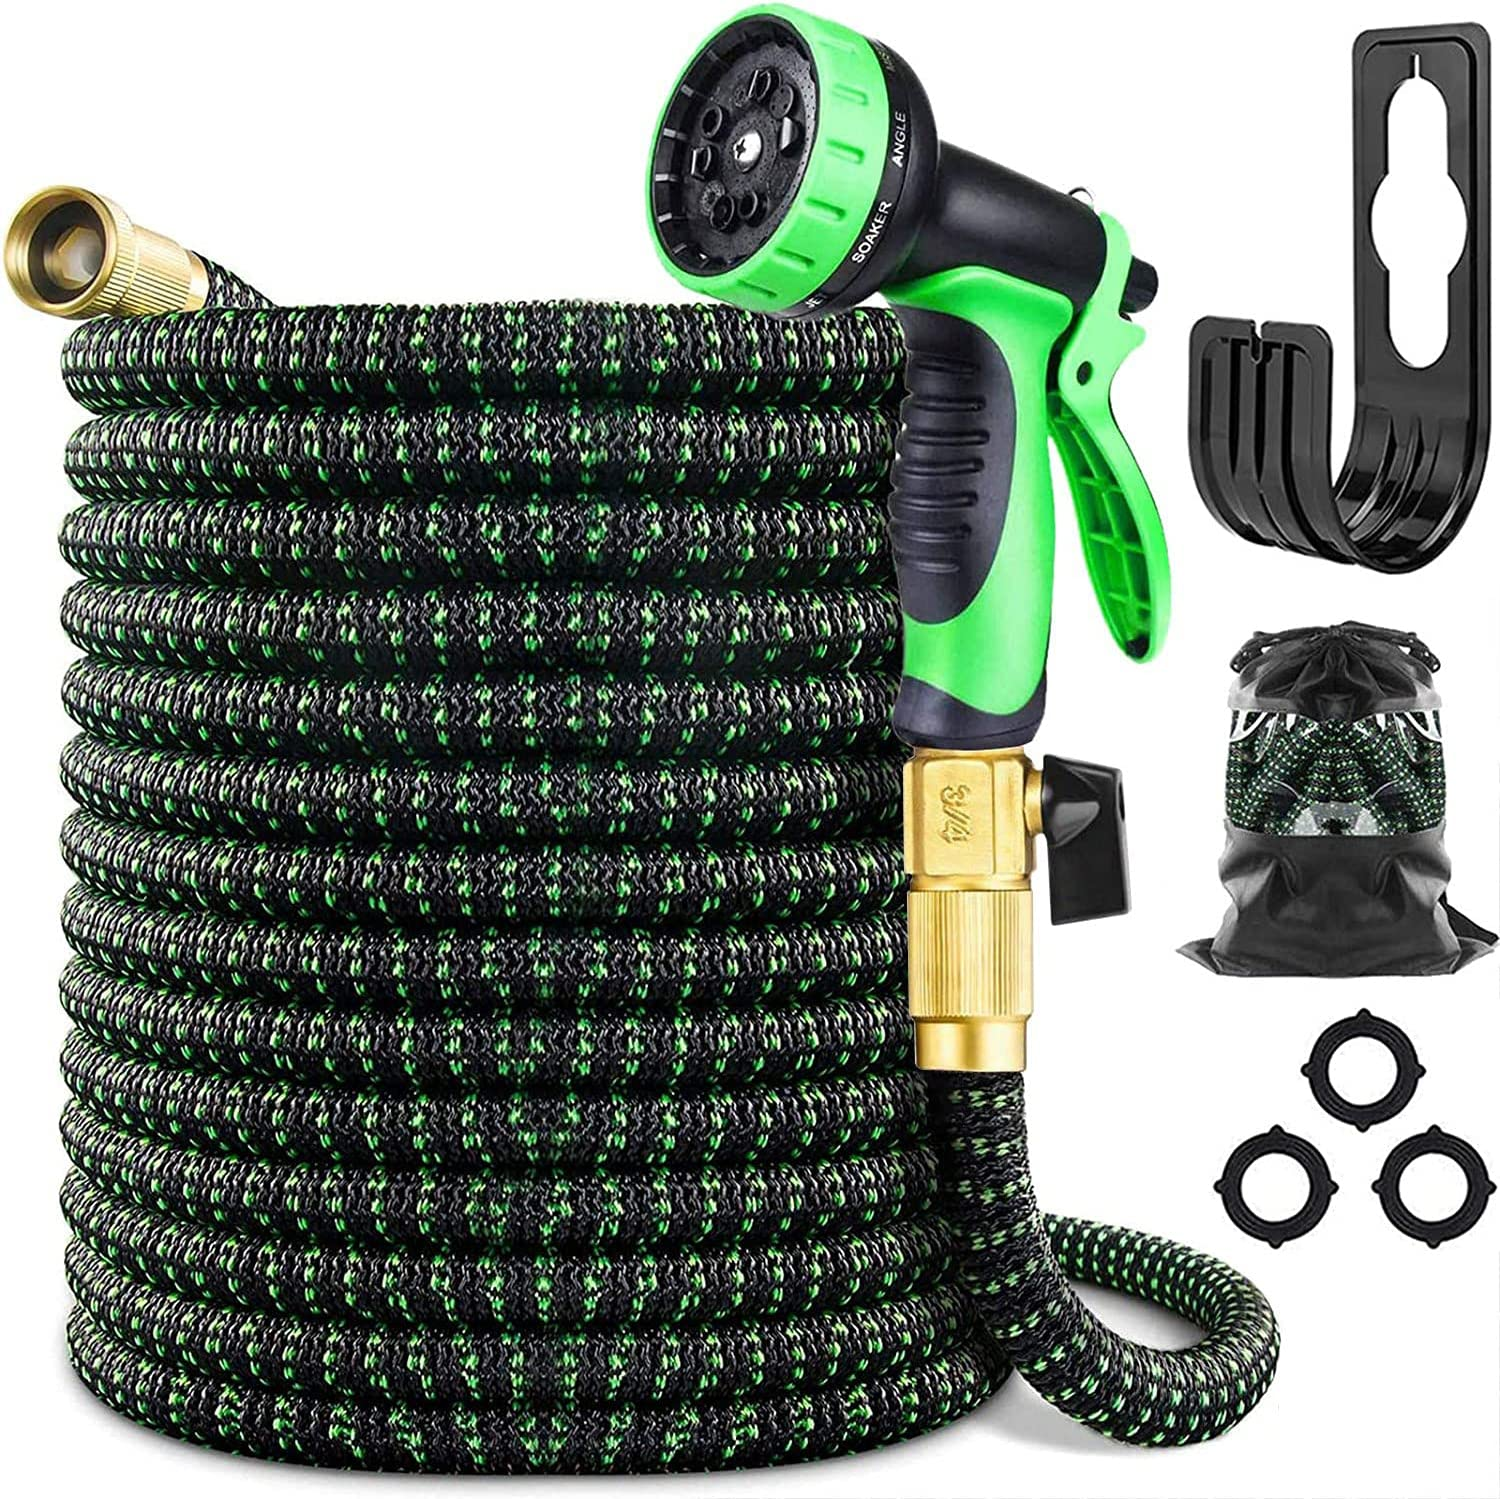 Expandable Garden Hose 50FT Water Hose with 3/4